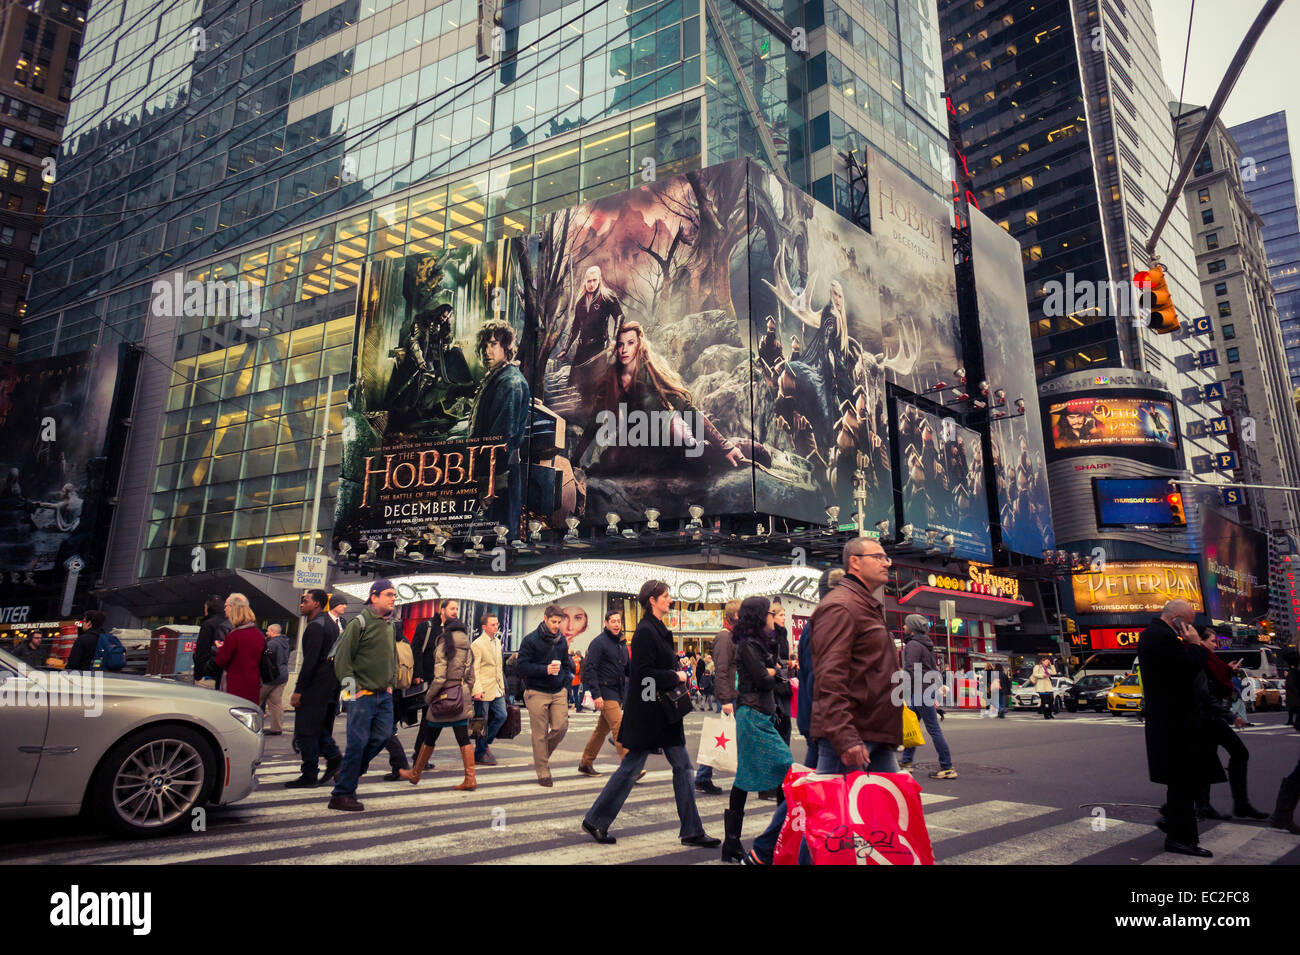 Advertising for the new  'The Hobbit: Battle of the Armies' in Times Square in New York on Thursday, December - Stock Image